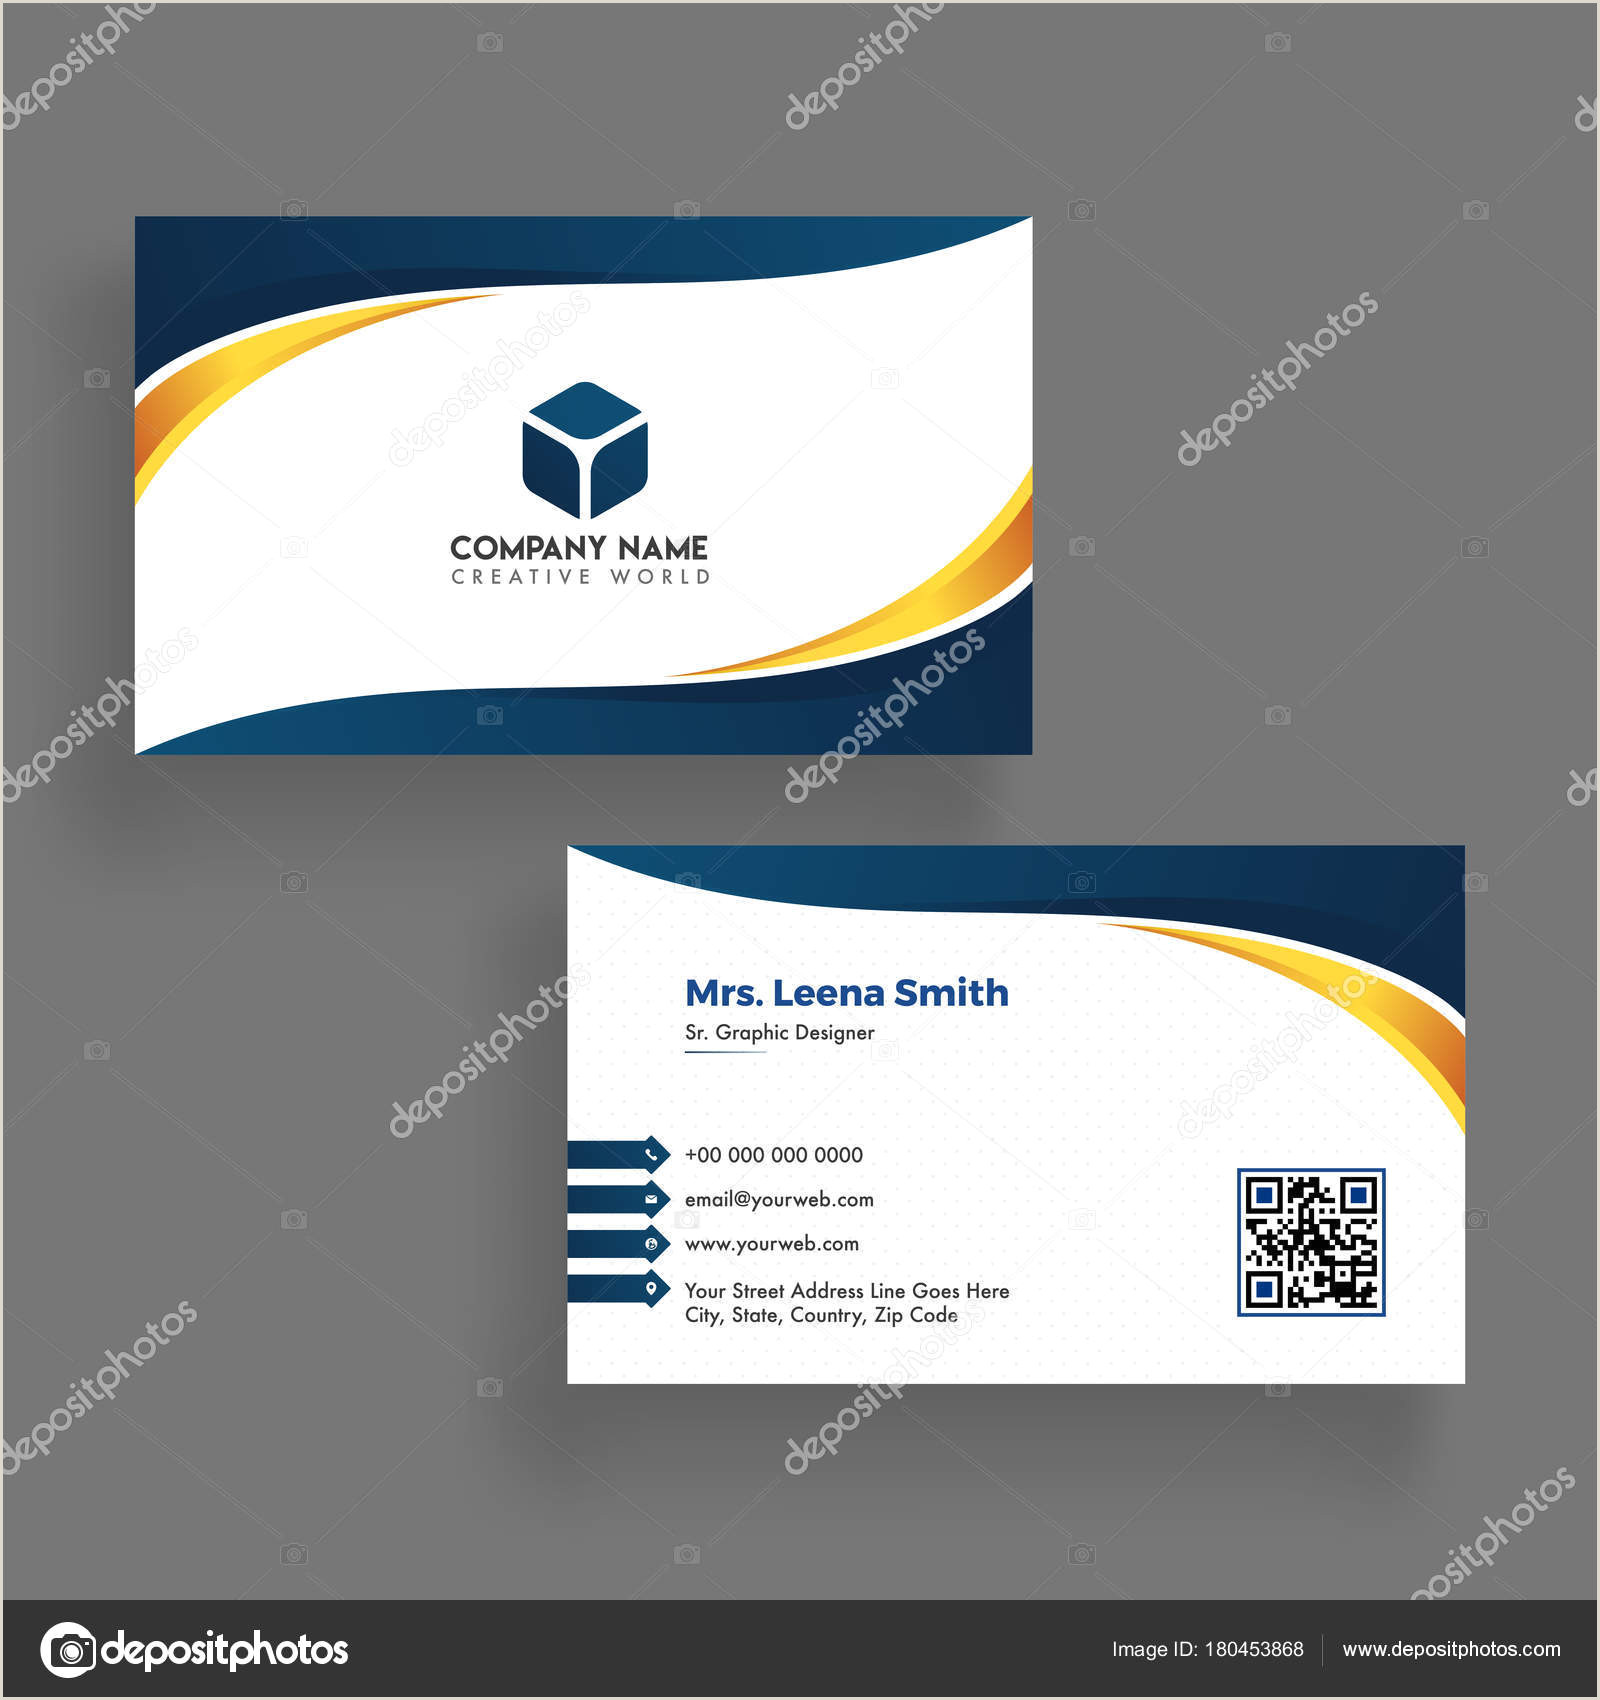 Business Card Template Front And Back Modern Business Card Template Design Both Sided Contact Card F